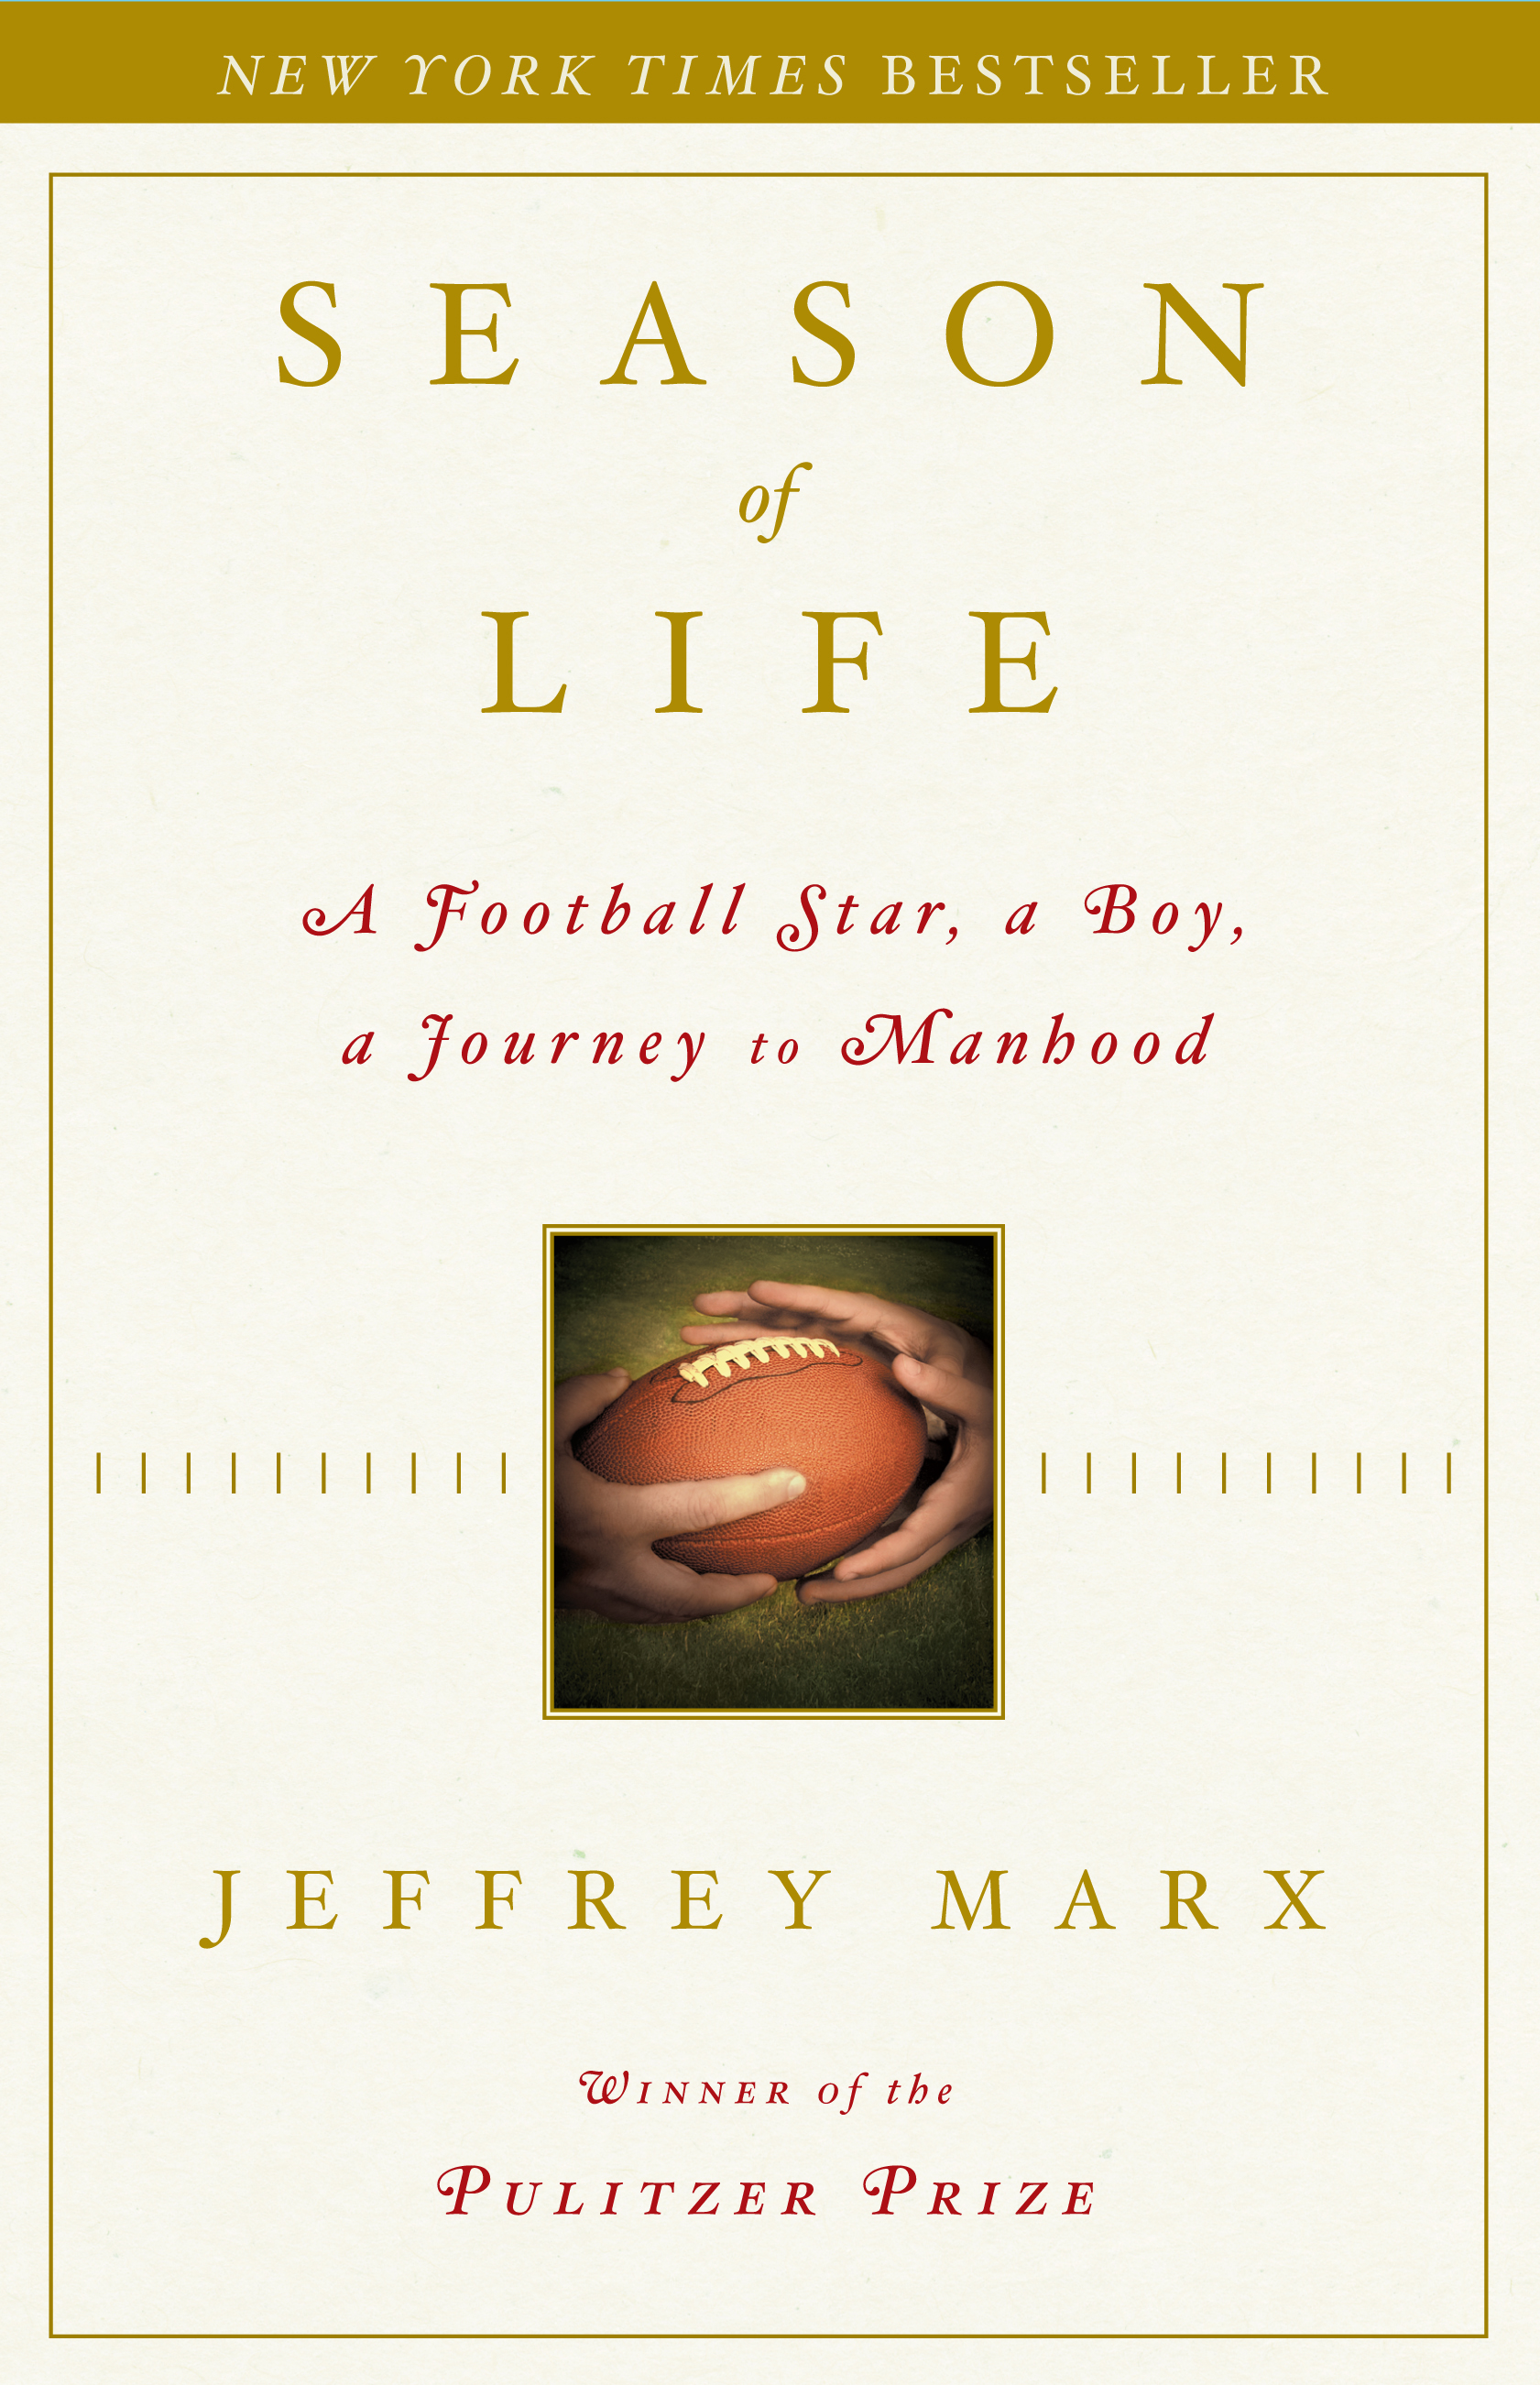 Season of Life | Book by Jeffrey Marx | Official Publisher